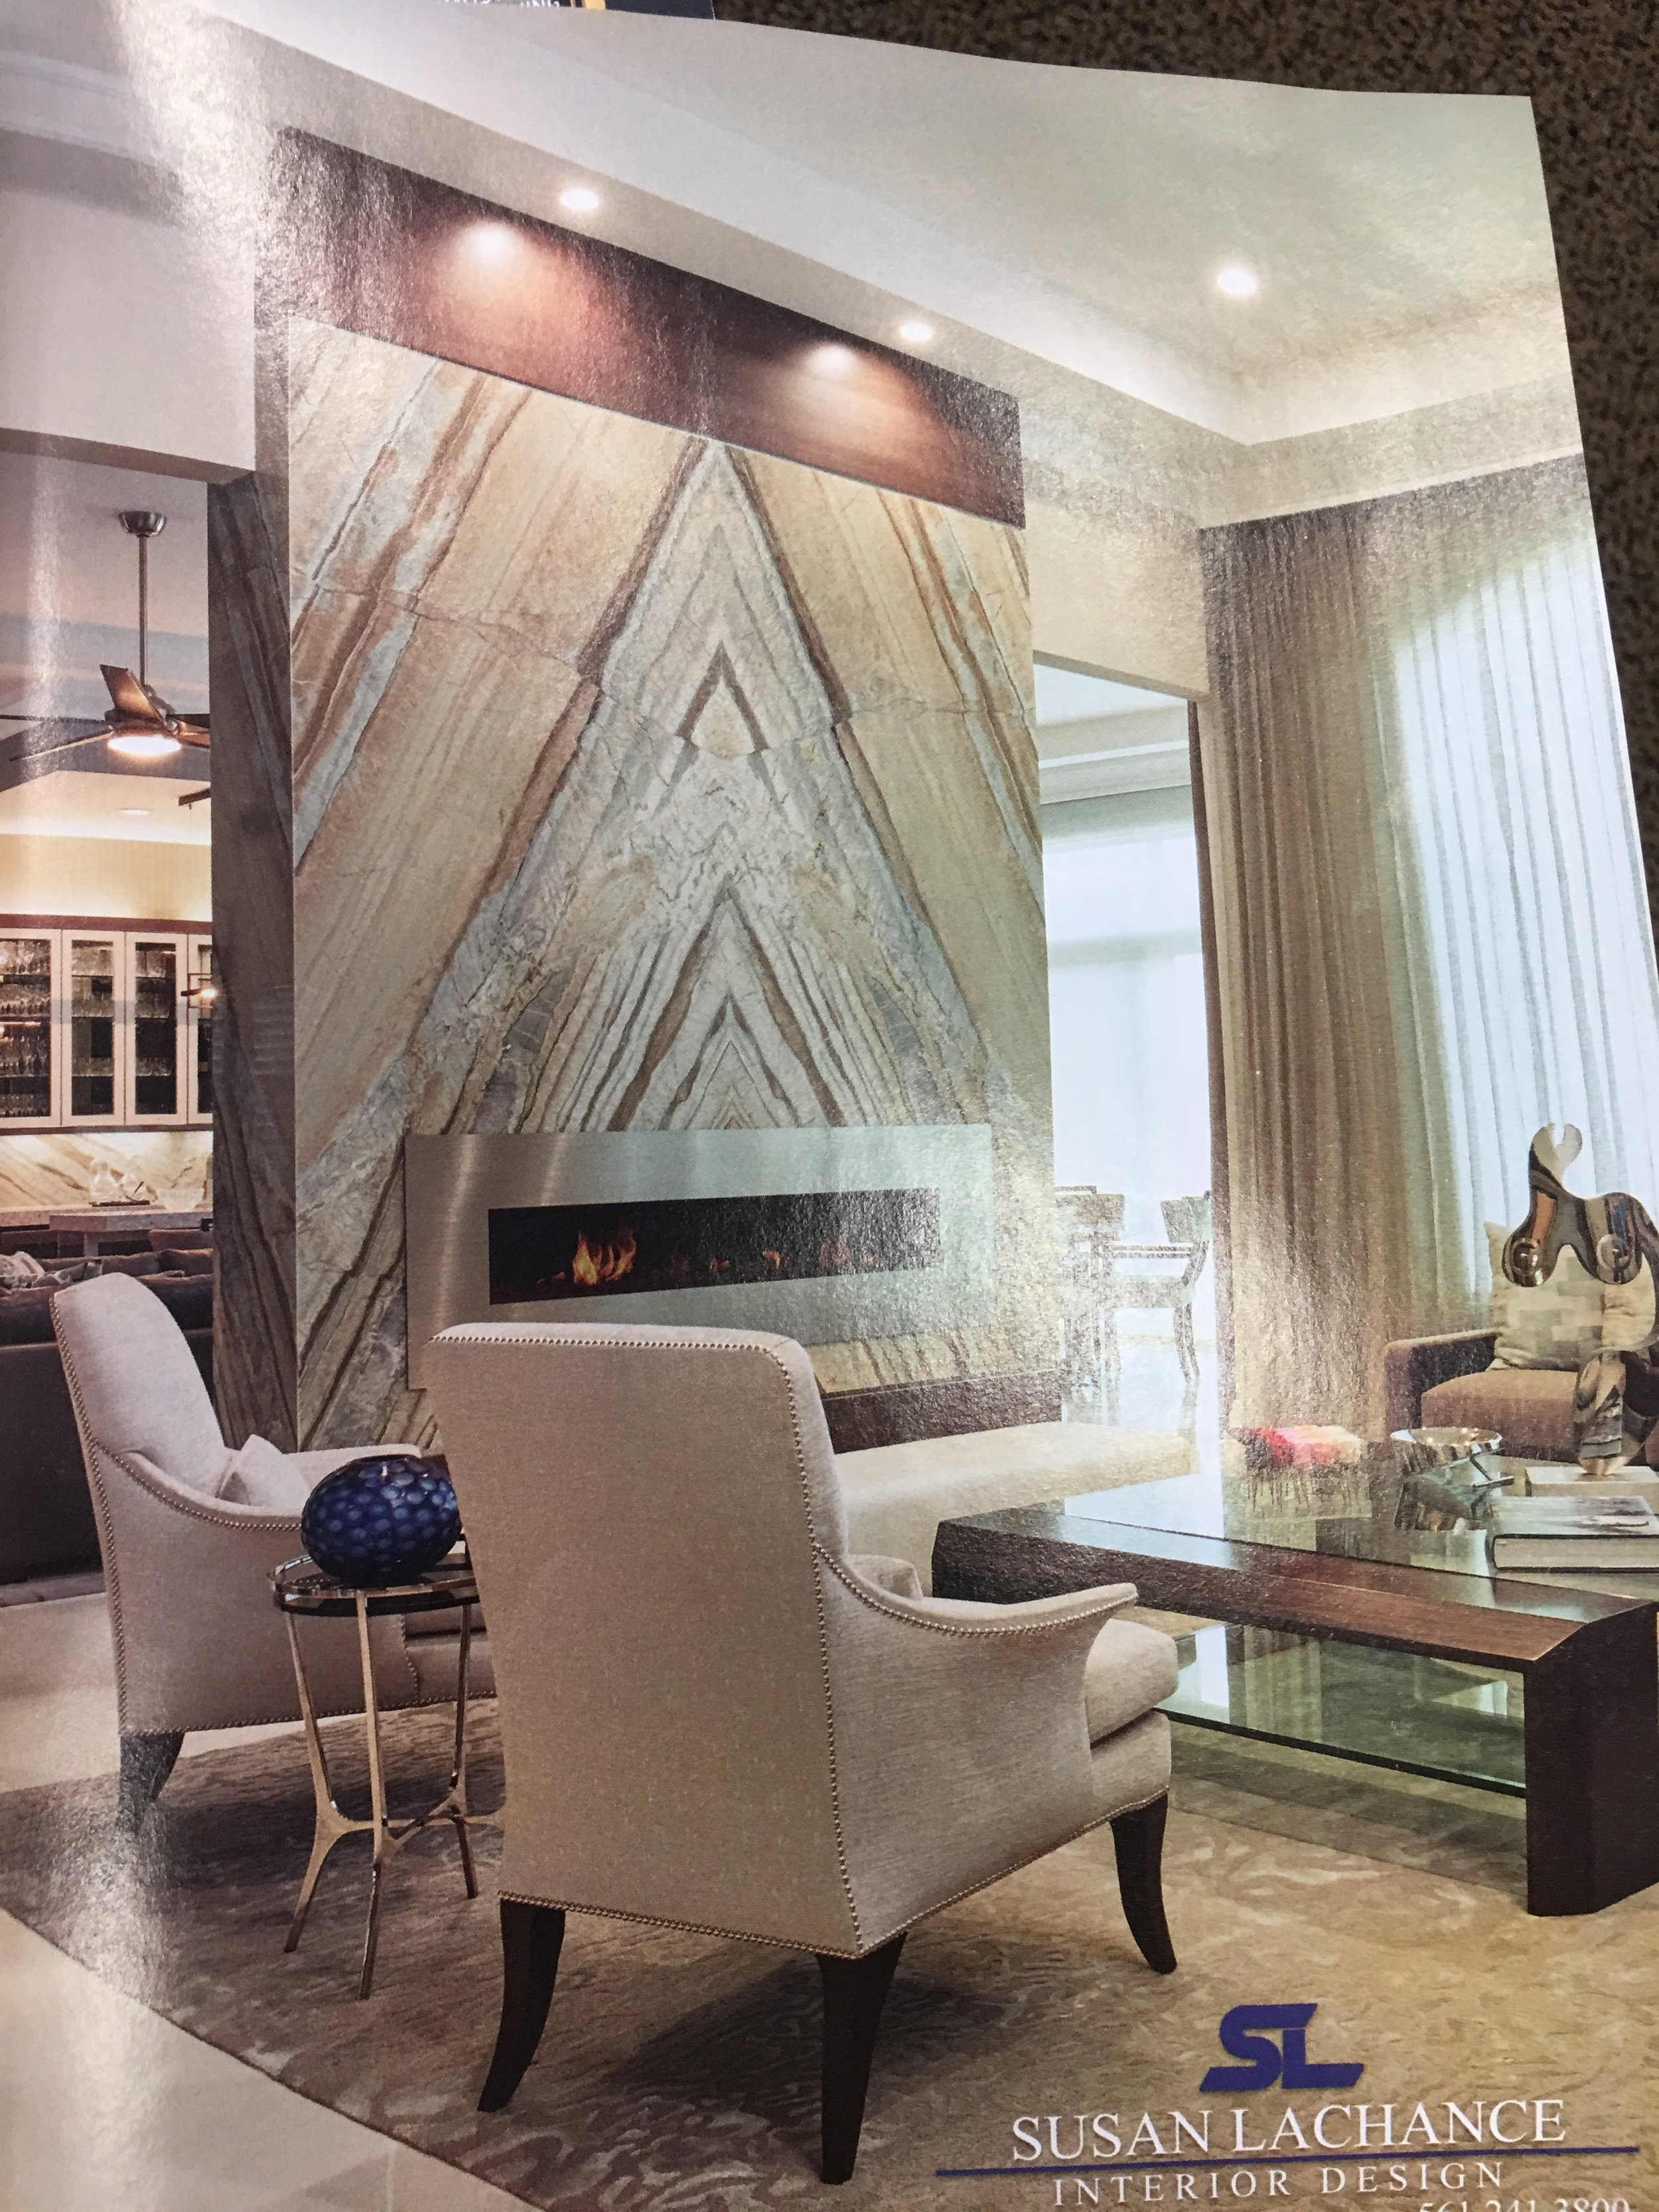 ARCHITECTURAL SPECIALTIES  As featured in the Boca Raton Observer with our highly recommended Interior Designer Susan LaChance…